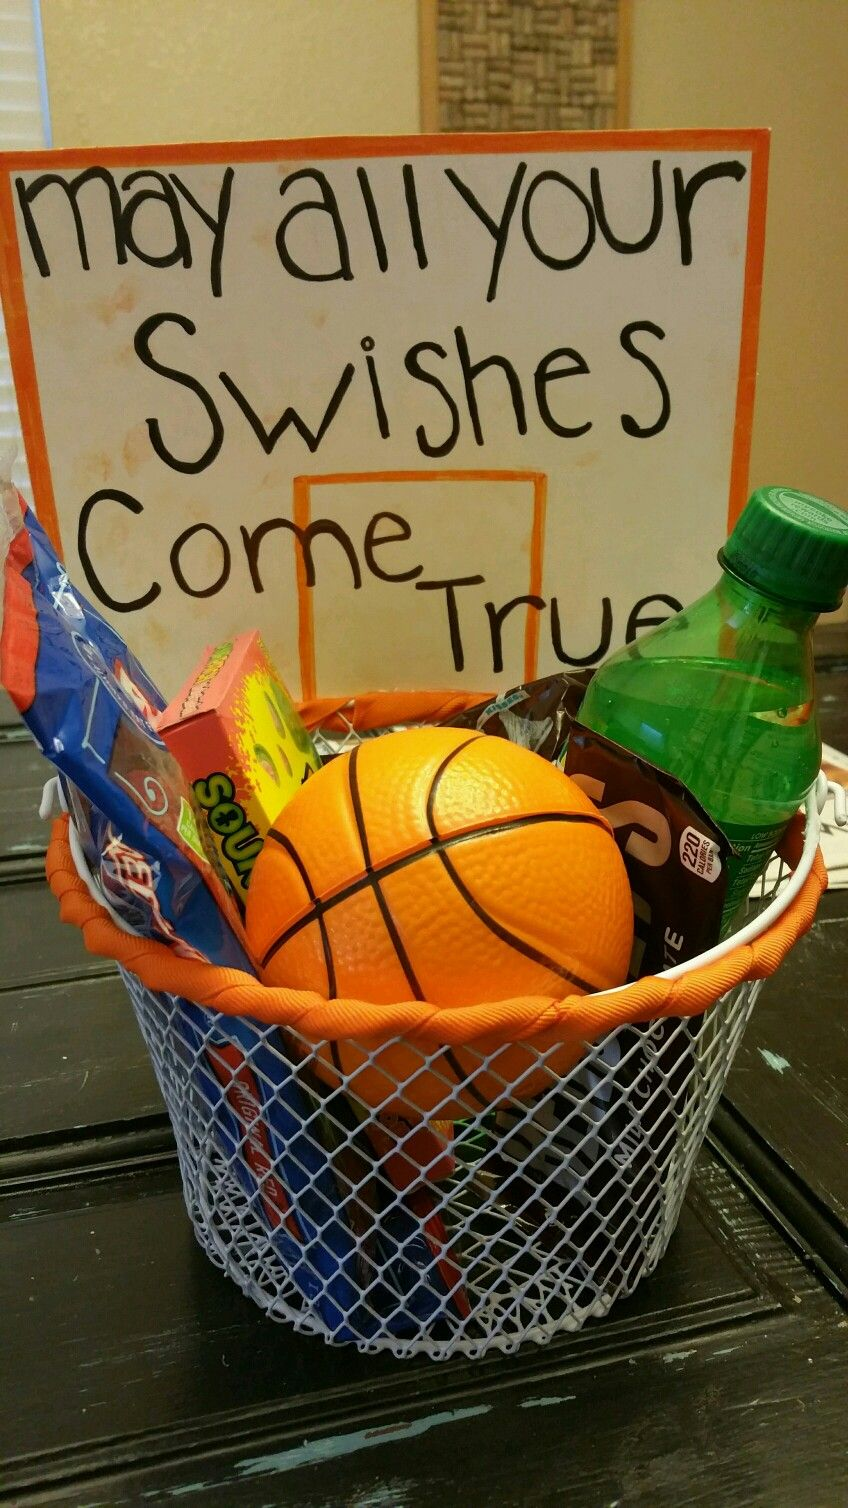 May All Your Swishes Come True Basketball Gift Basket We Found Everything At The Dollar Store For A Total Of Under 9